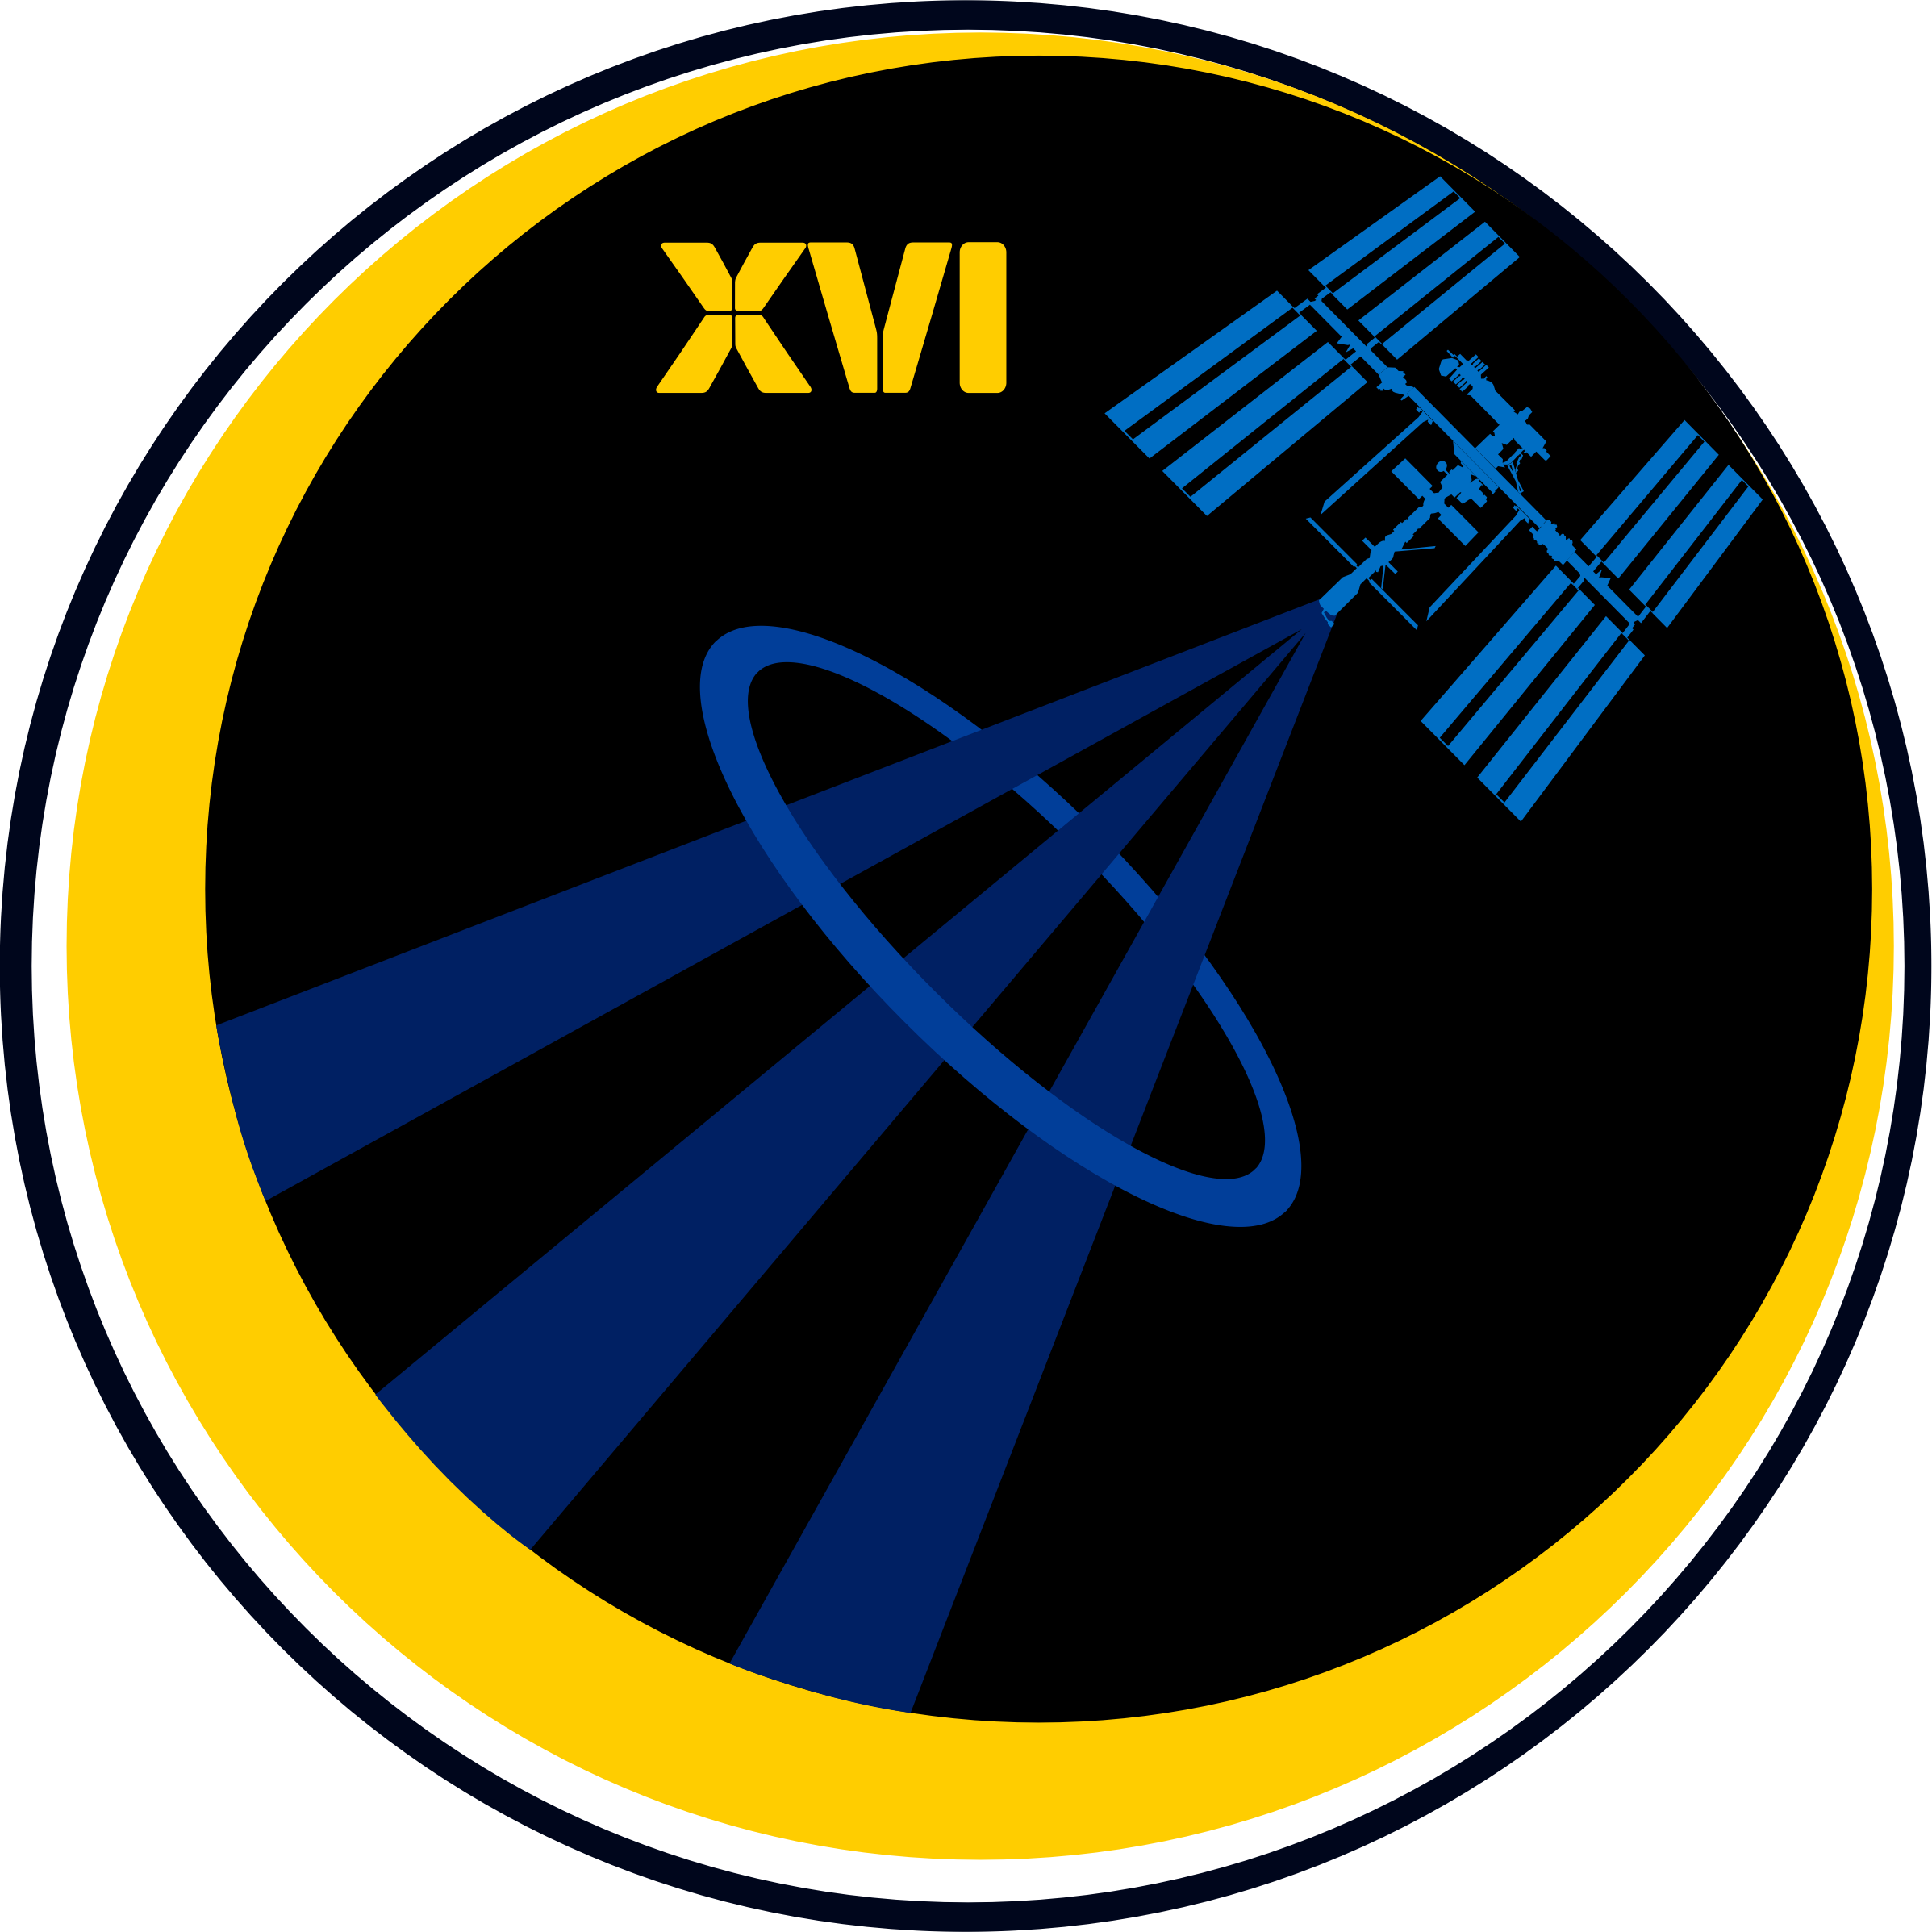 ISS Expedition 16 Patch by NASA